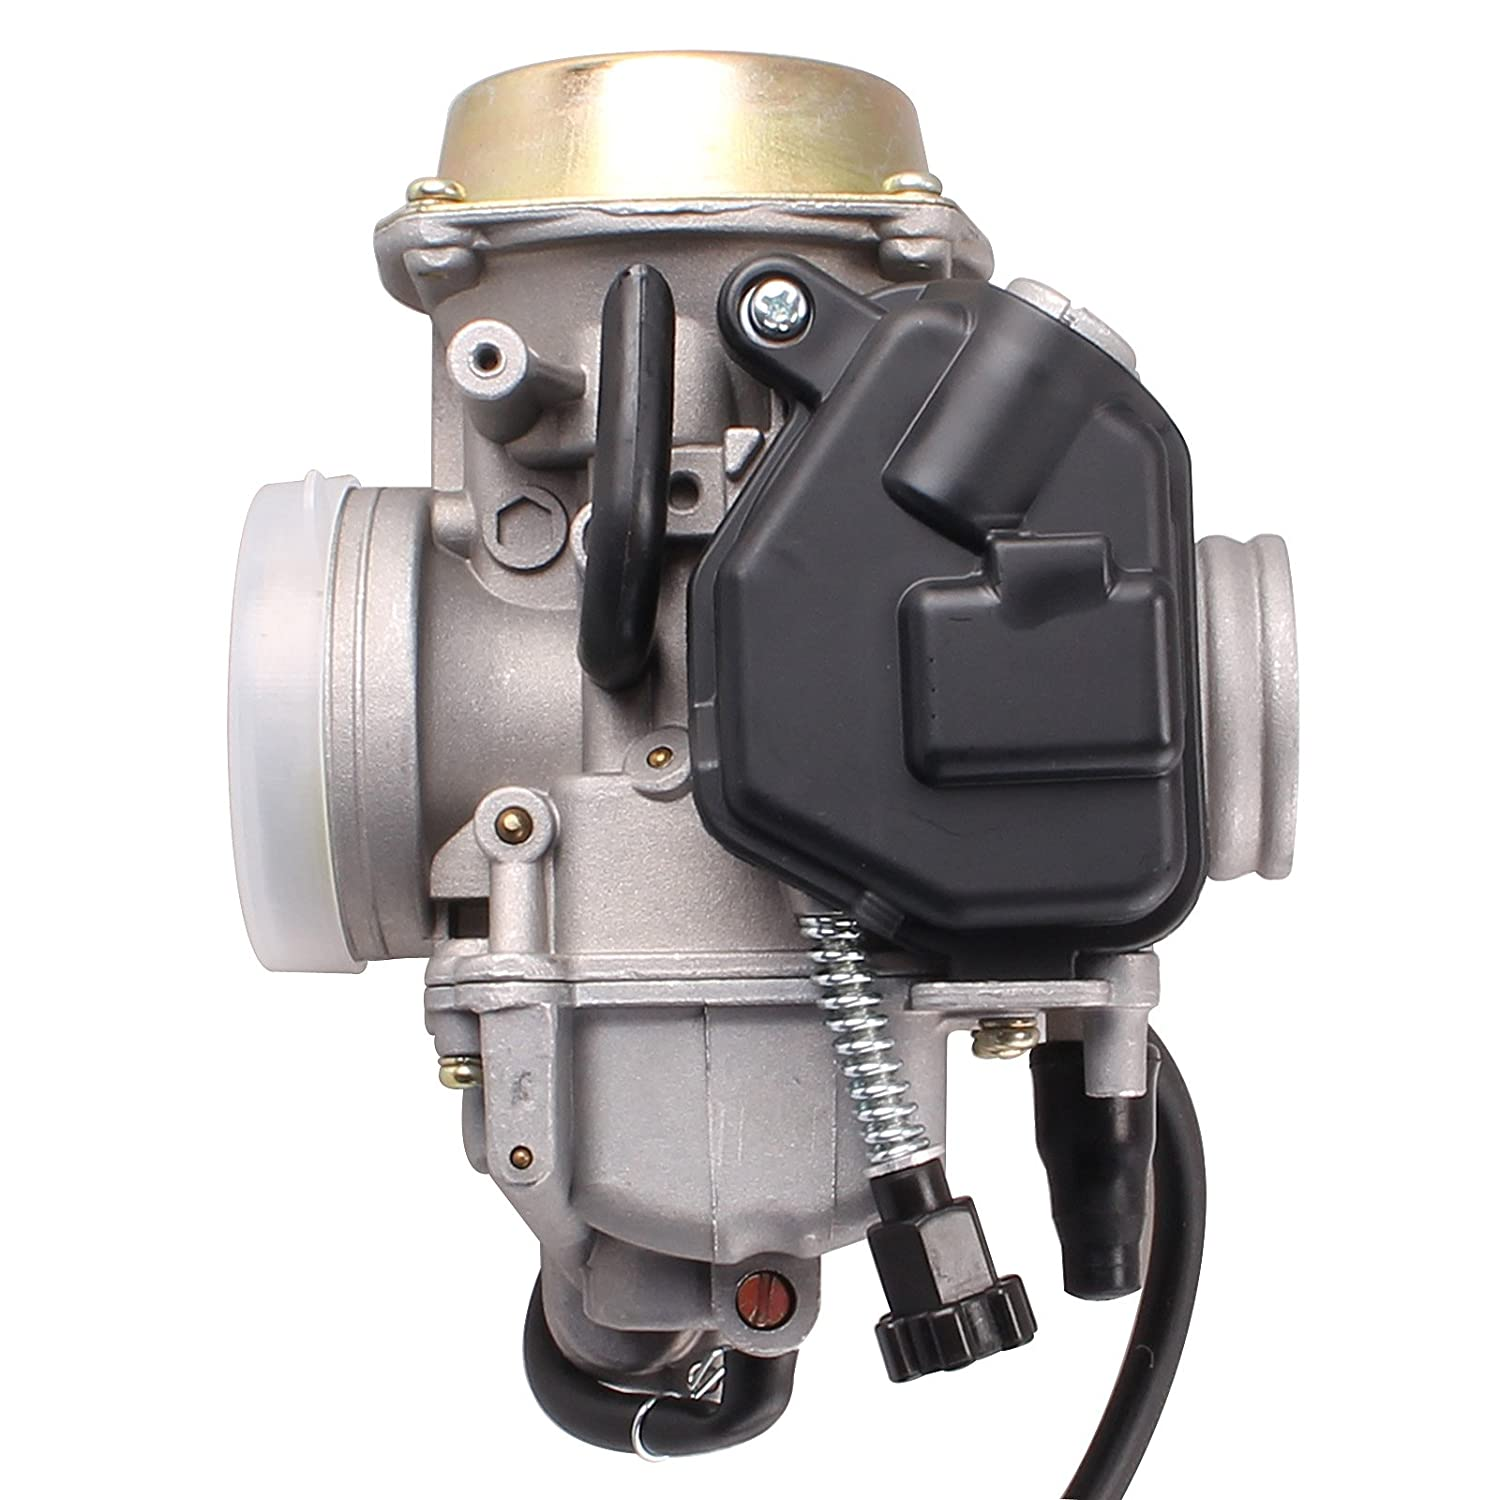 Heart Horse Carburetor For Honda 450 Trx450es Fe Fm S Rancher 350 Diagram Car Tuning Fourtrax Foreman 98 99 00 01 02 03 04 Automotive